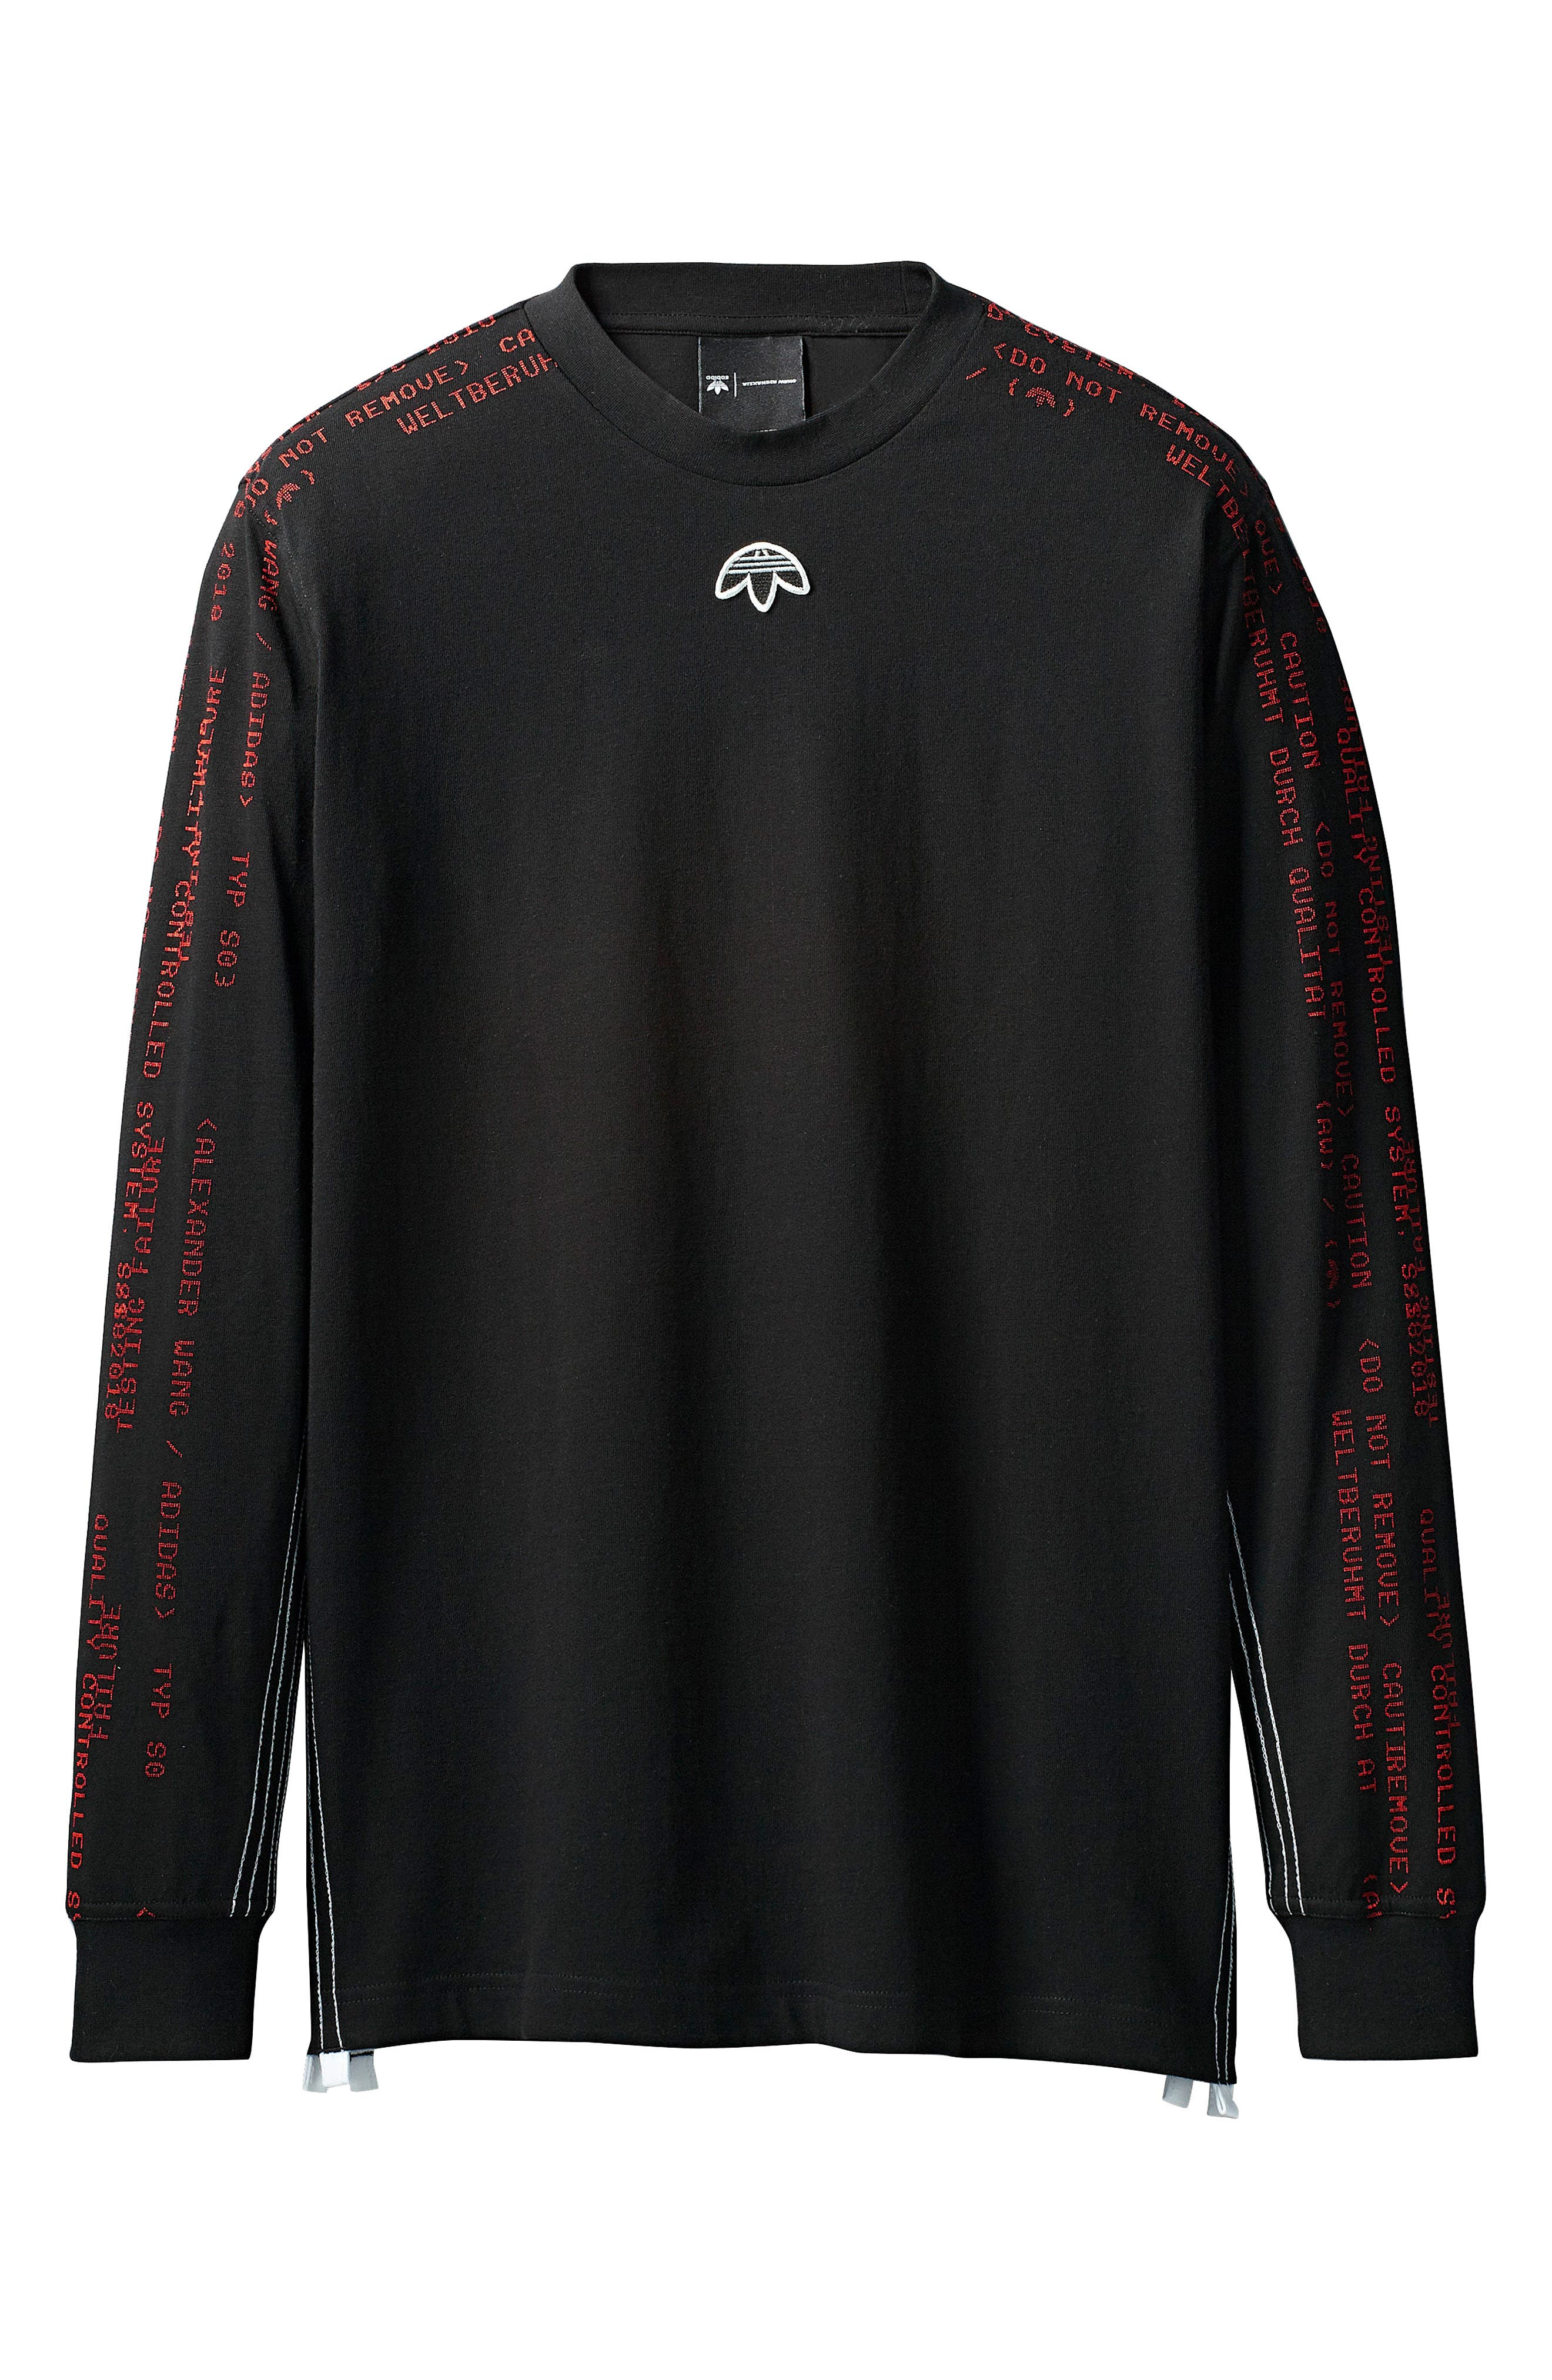 Tee,                             Alternate thumbnail 7, color,                             Black/ Core Red